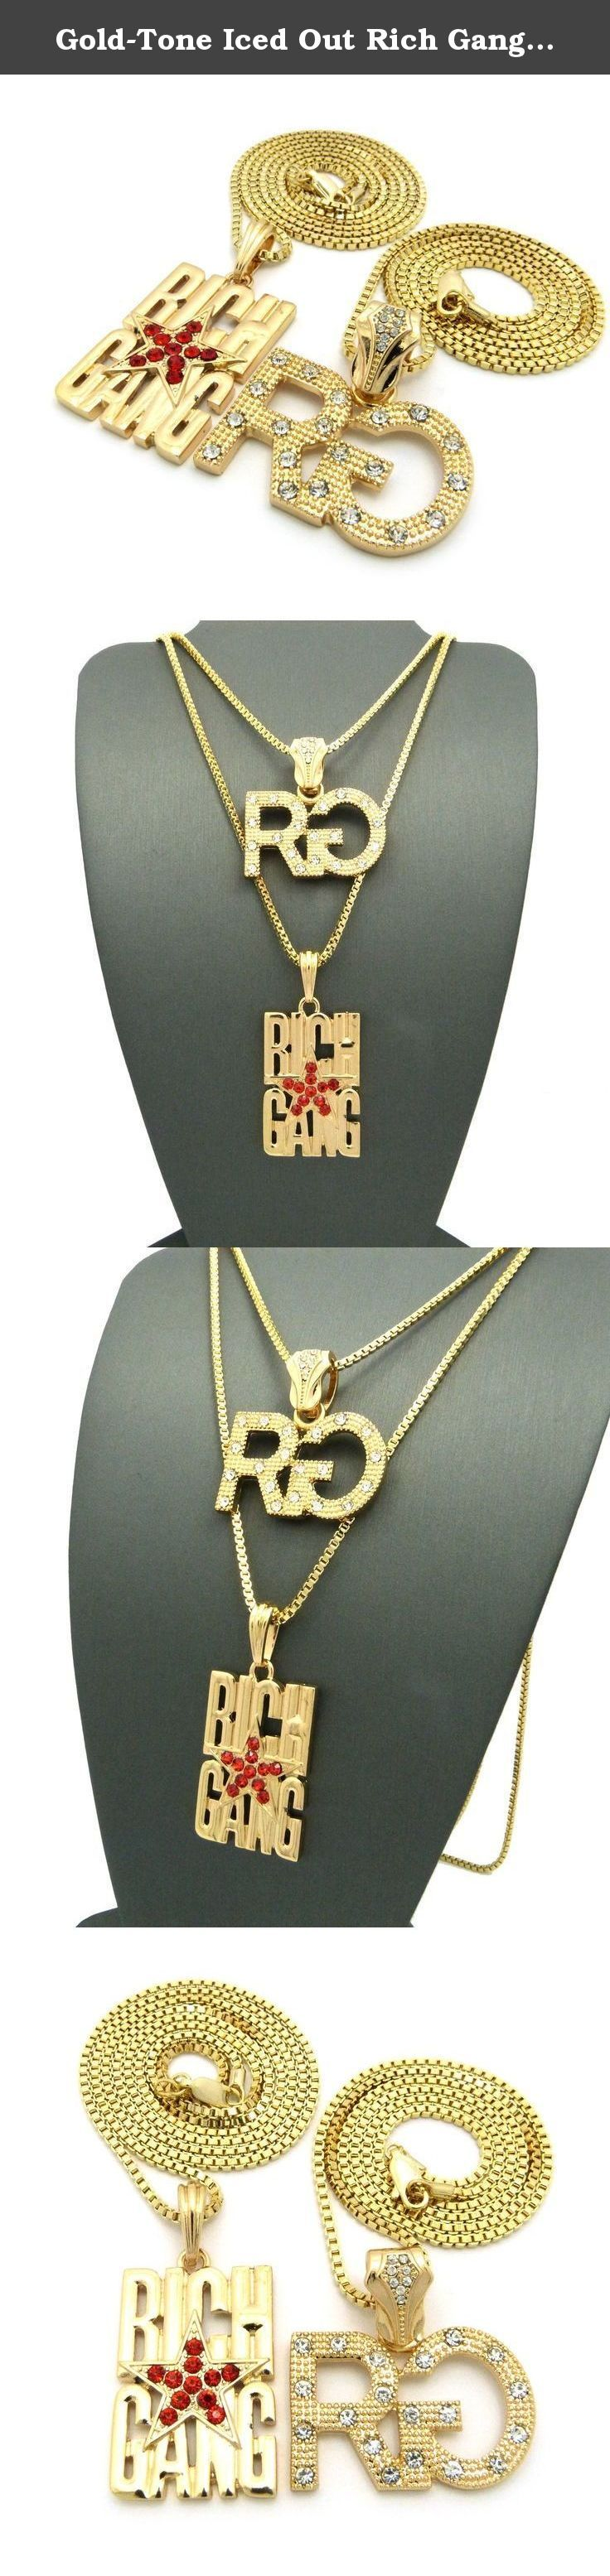 Gold-Tone Iced Out Rich Gang Star RG Pendant Box Chain Hip Hop 2 Necklace Set RC896G. Gold-Tone Iced Out Rich Gang Star RG Pendant Box Chain Hip Hop 2 Necklace Set.